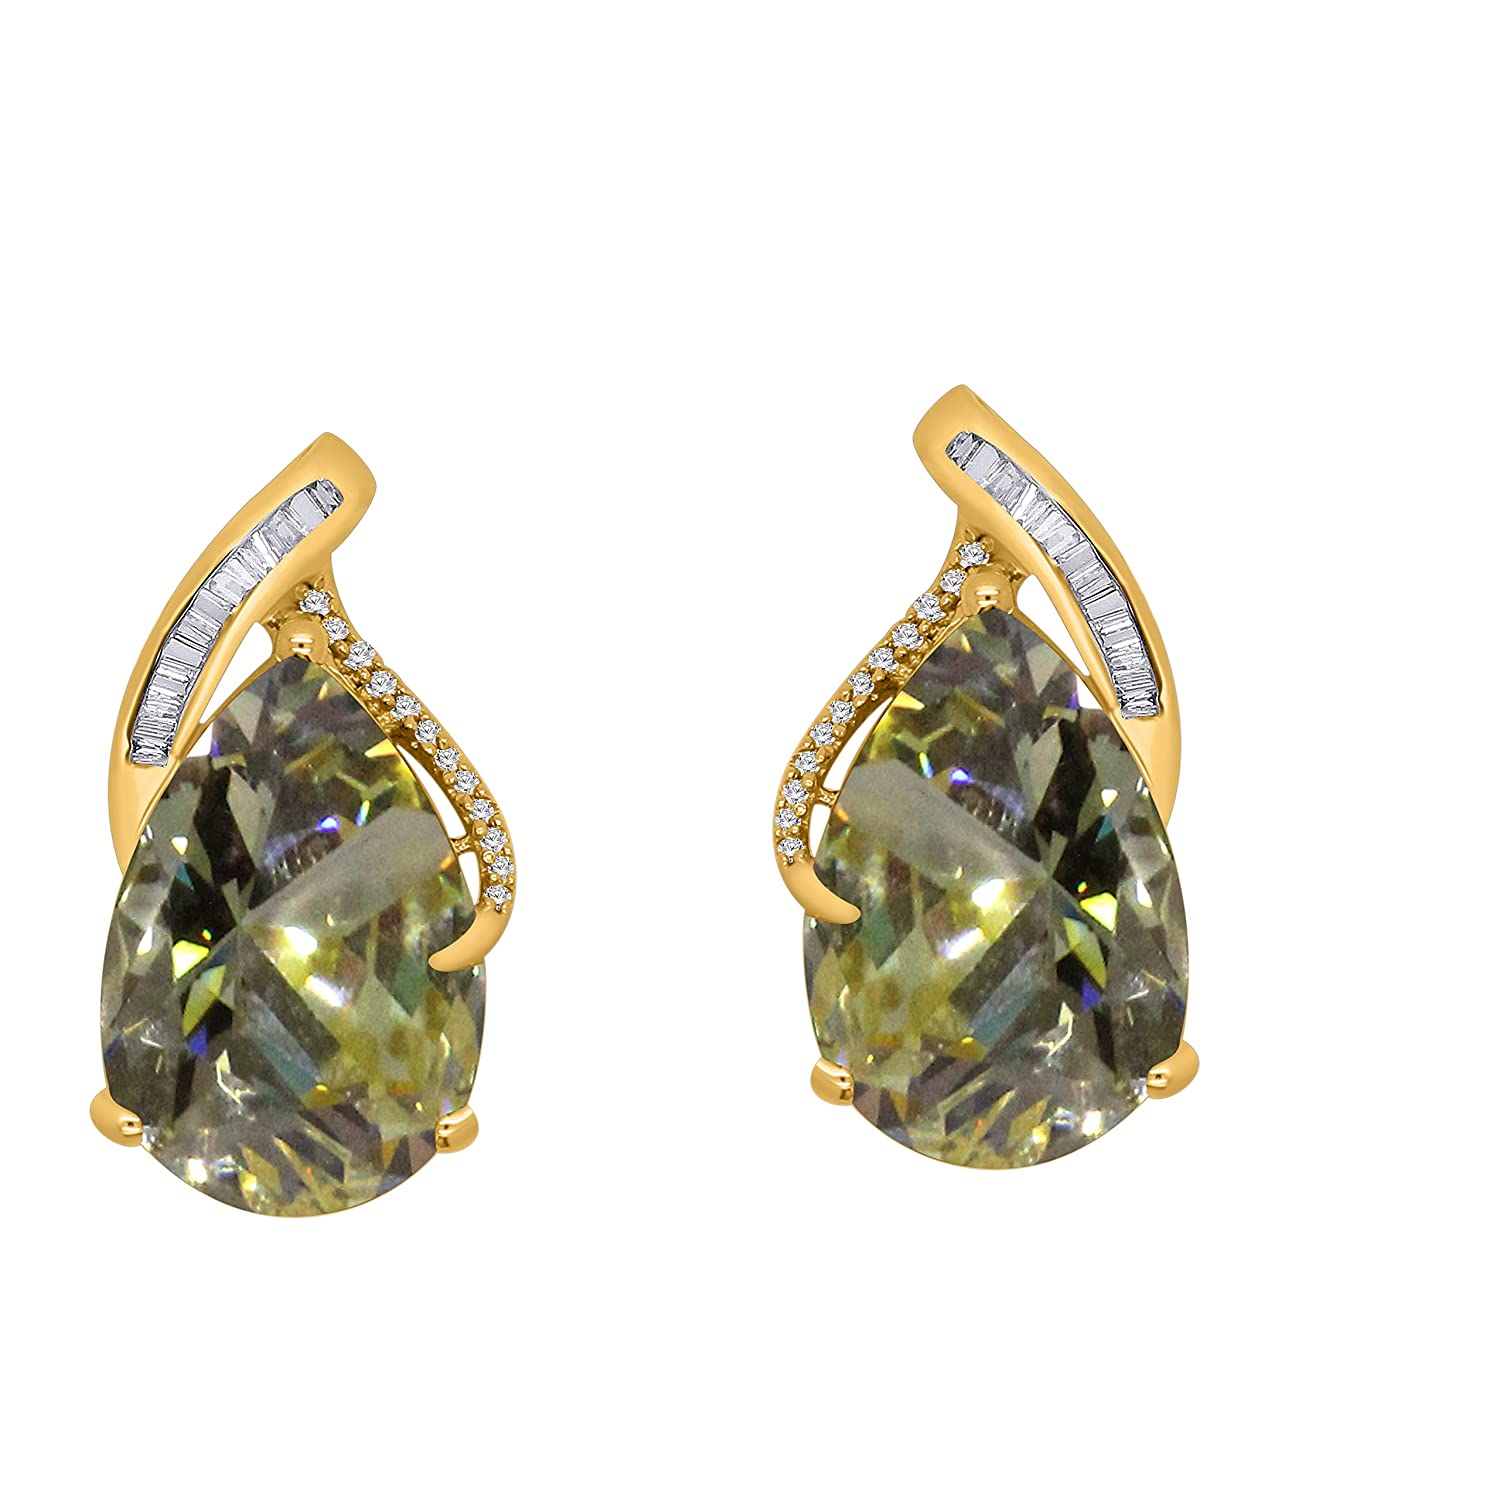 15X10MM Pear Fancy Yellow Topaz /& 0.18 Ct Diamond 14K Gold Over Sterling Silver Solitaire Stud Earrings